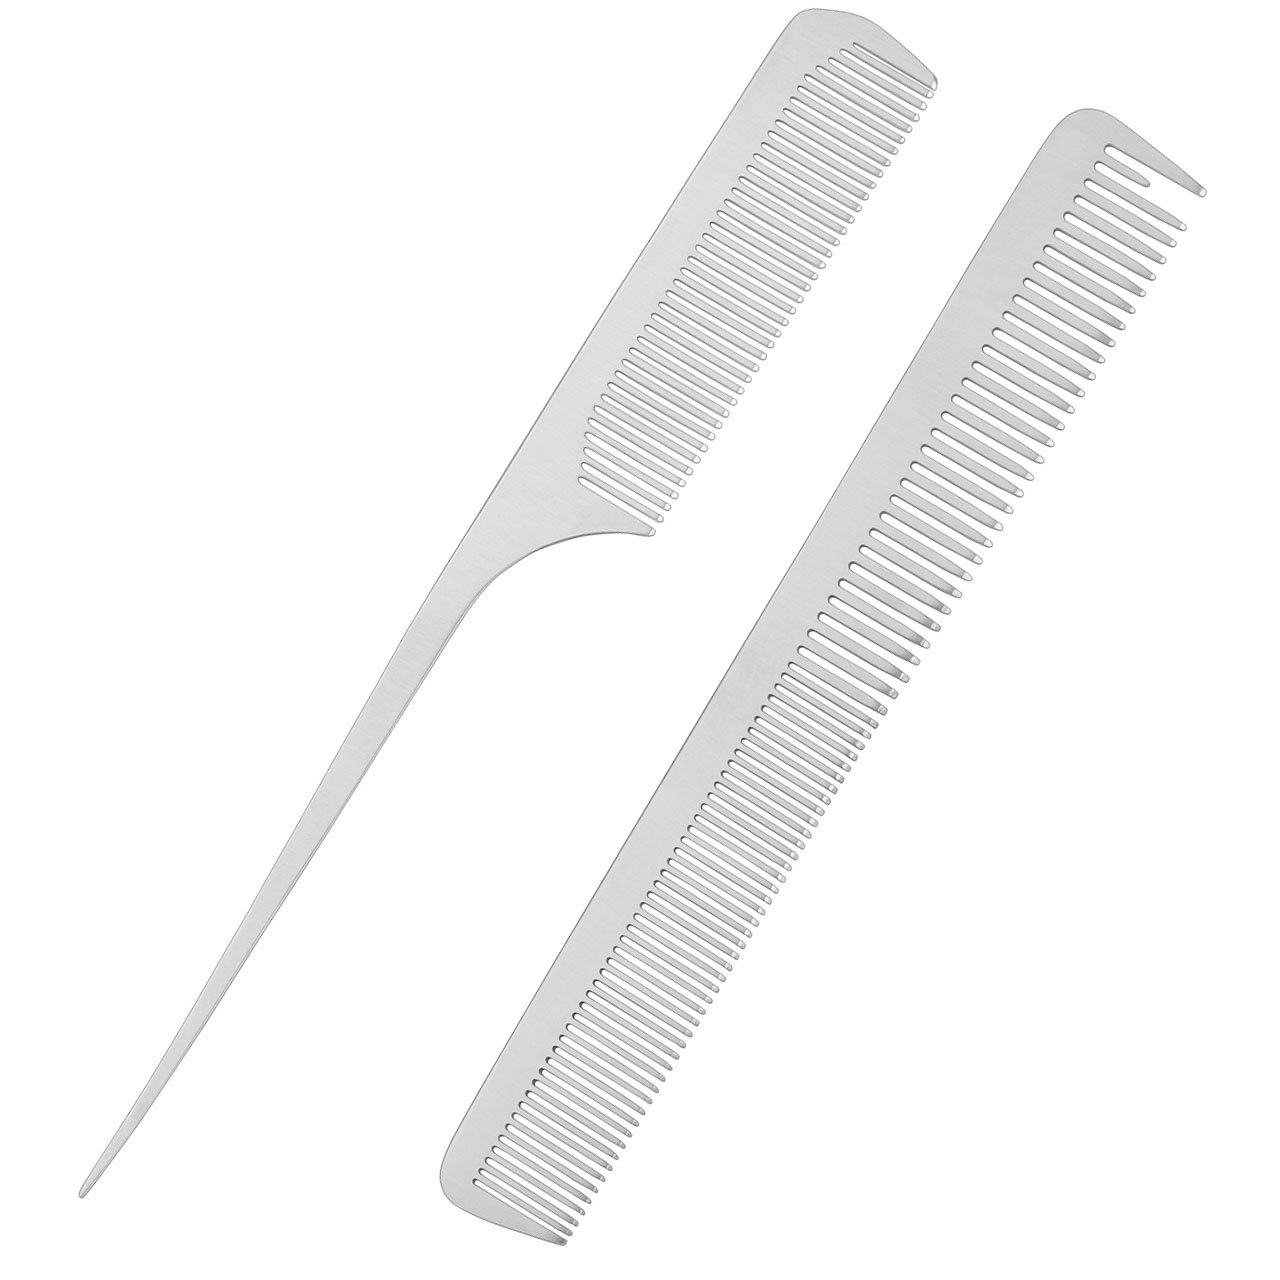 CCbeauty 2-Packs Metal Barber Comb Set Pack for Men & Women,Professional Hairdressing Salon Combs Hair cutting Tool Detangler Comb with Leather Bag (#2)